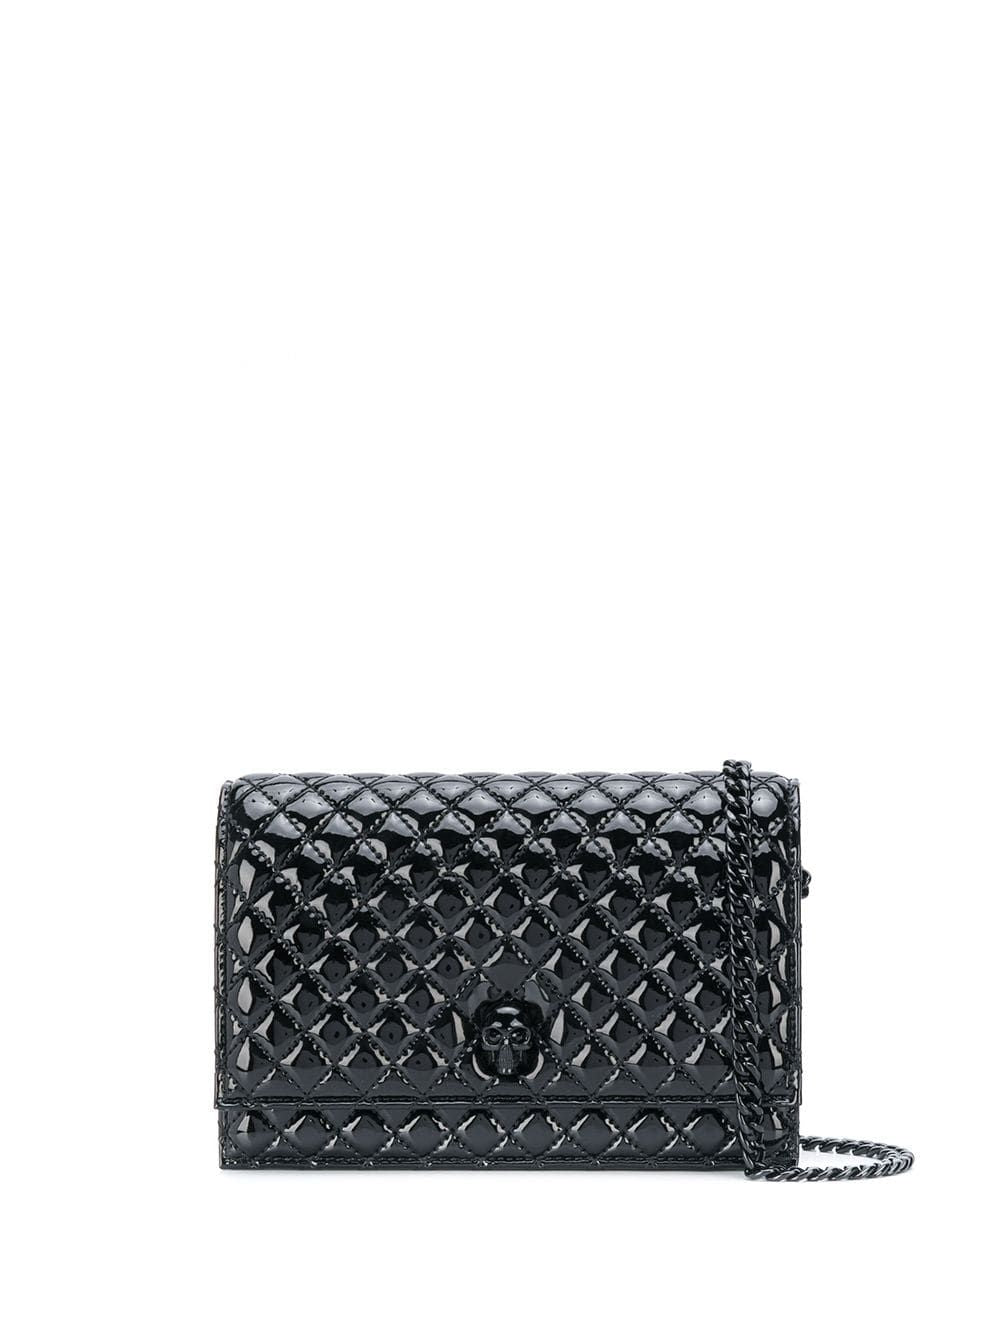 ALEXANDER MCQUEEN skull quilted shoulder bag